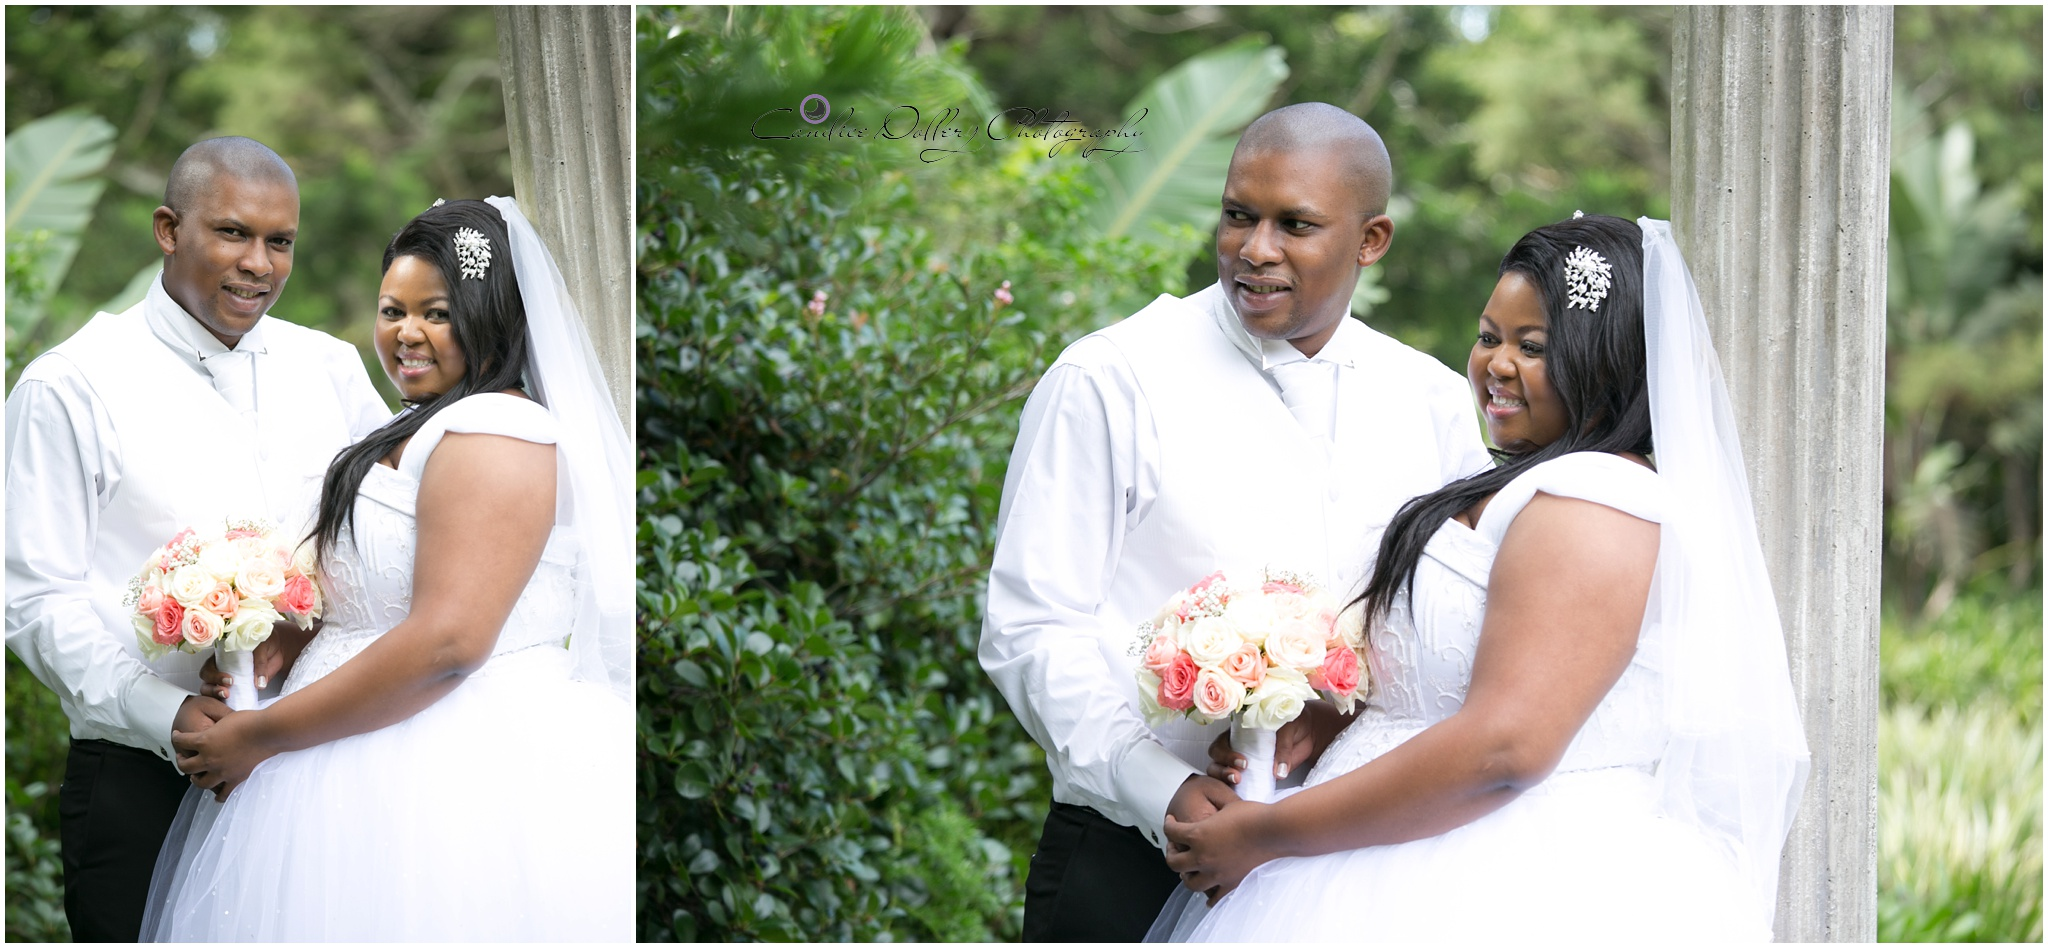 Wedding Gonubie Manor Thola & Phili-Candice Dollery Photograhy_4247